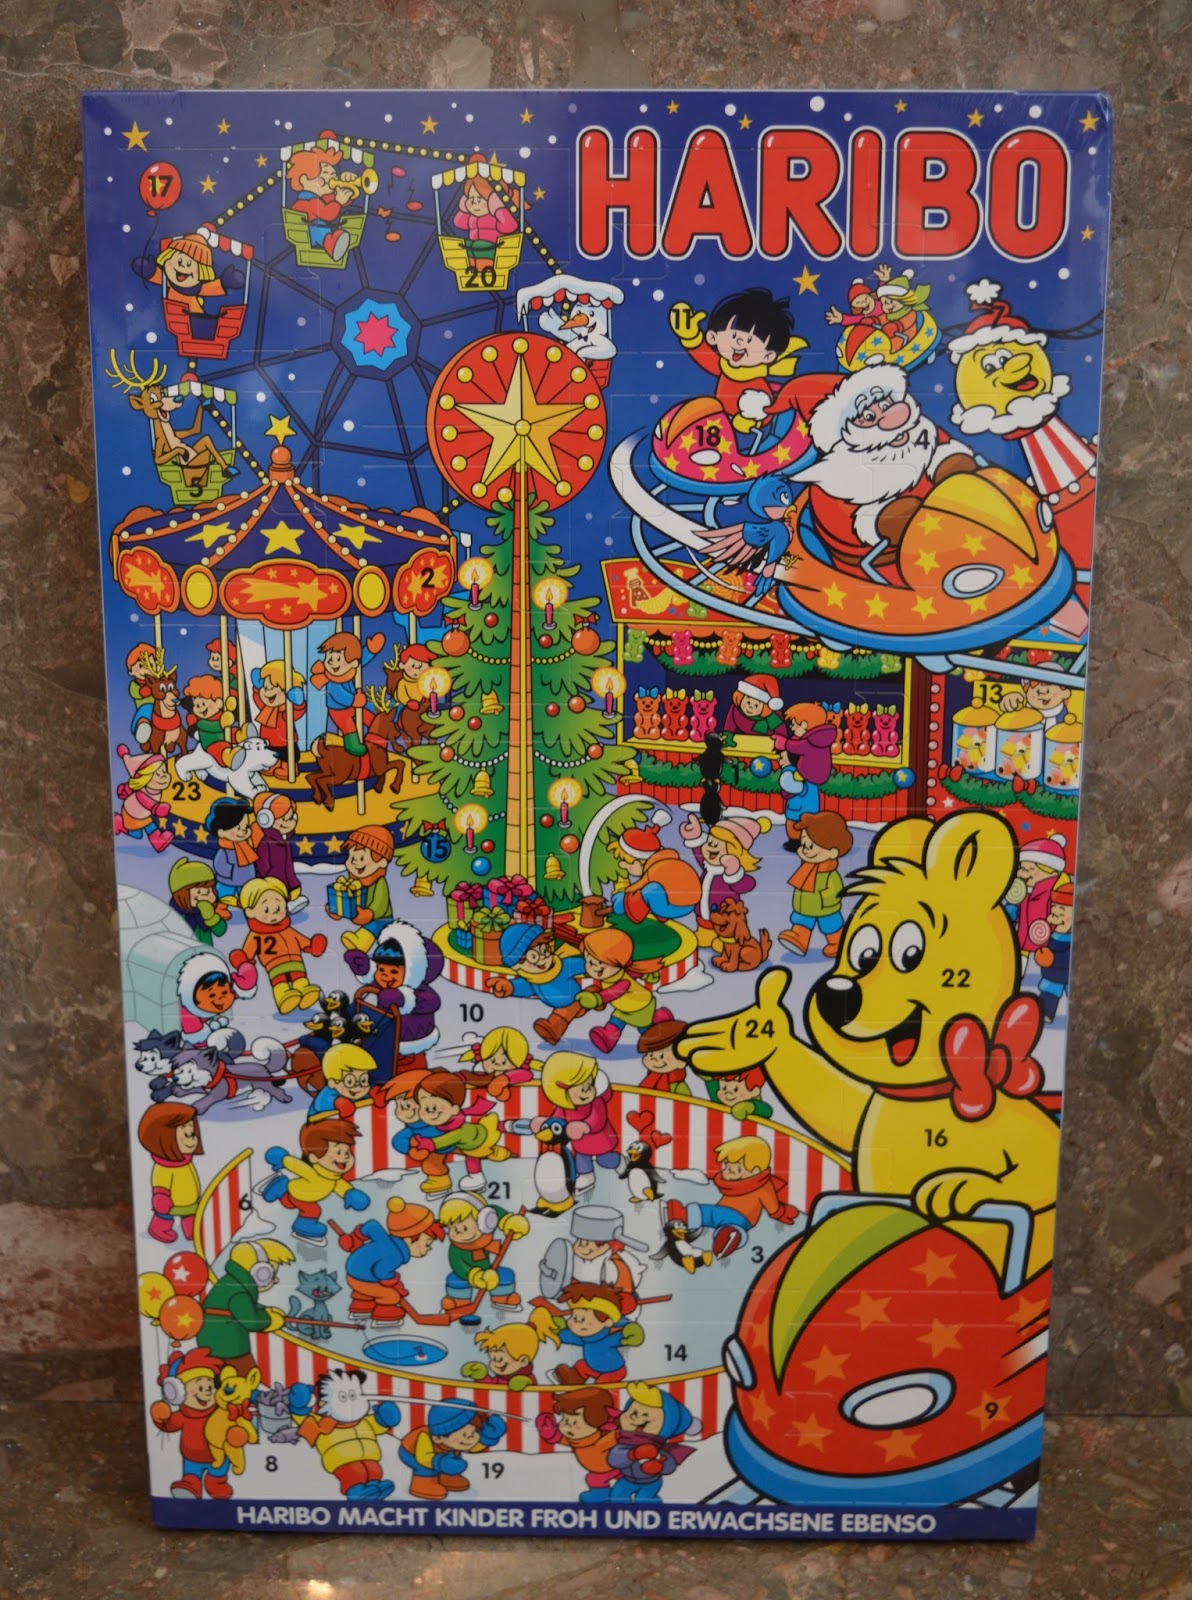 HARIBO Advent Calendar 2017 Review - Take a Peek Inside